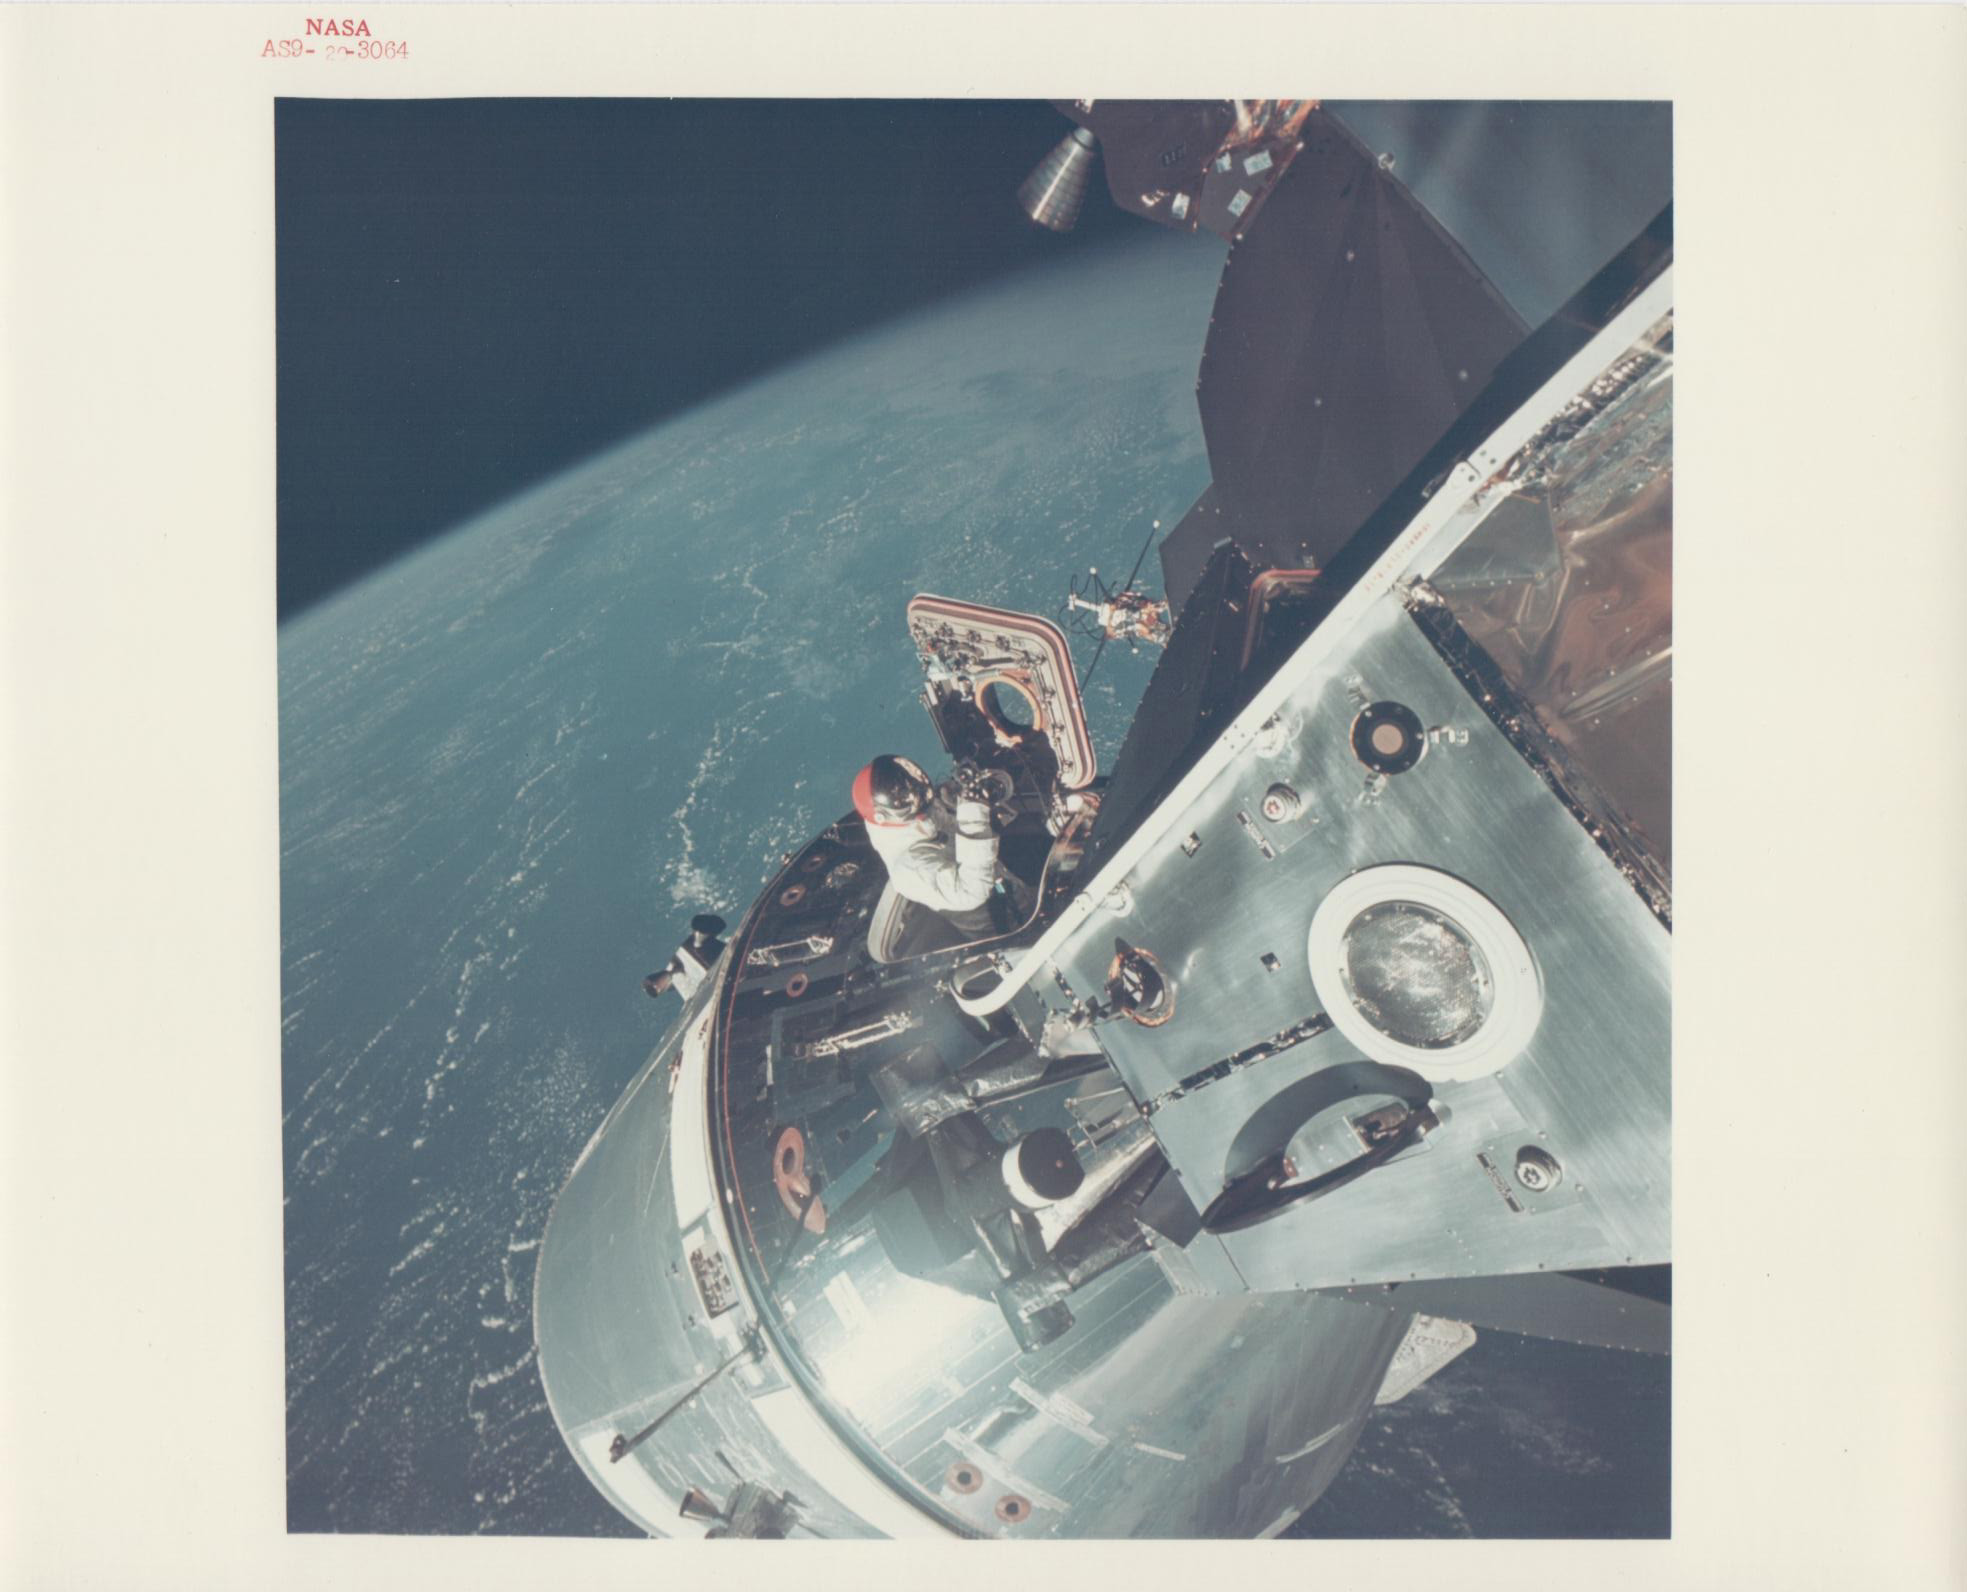 David Scott climbs out of the Command Module, Apollo 9, March 1969